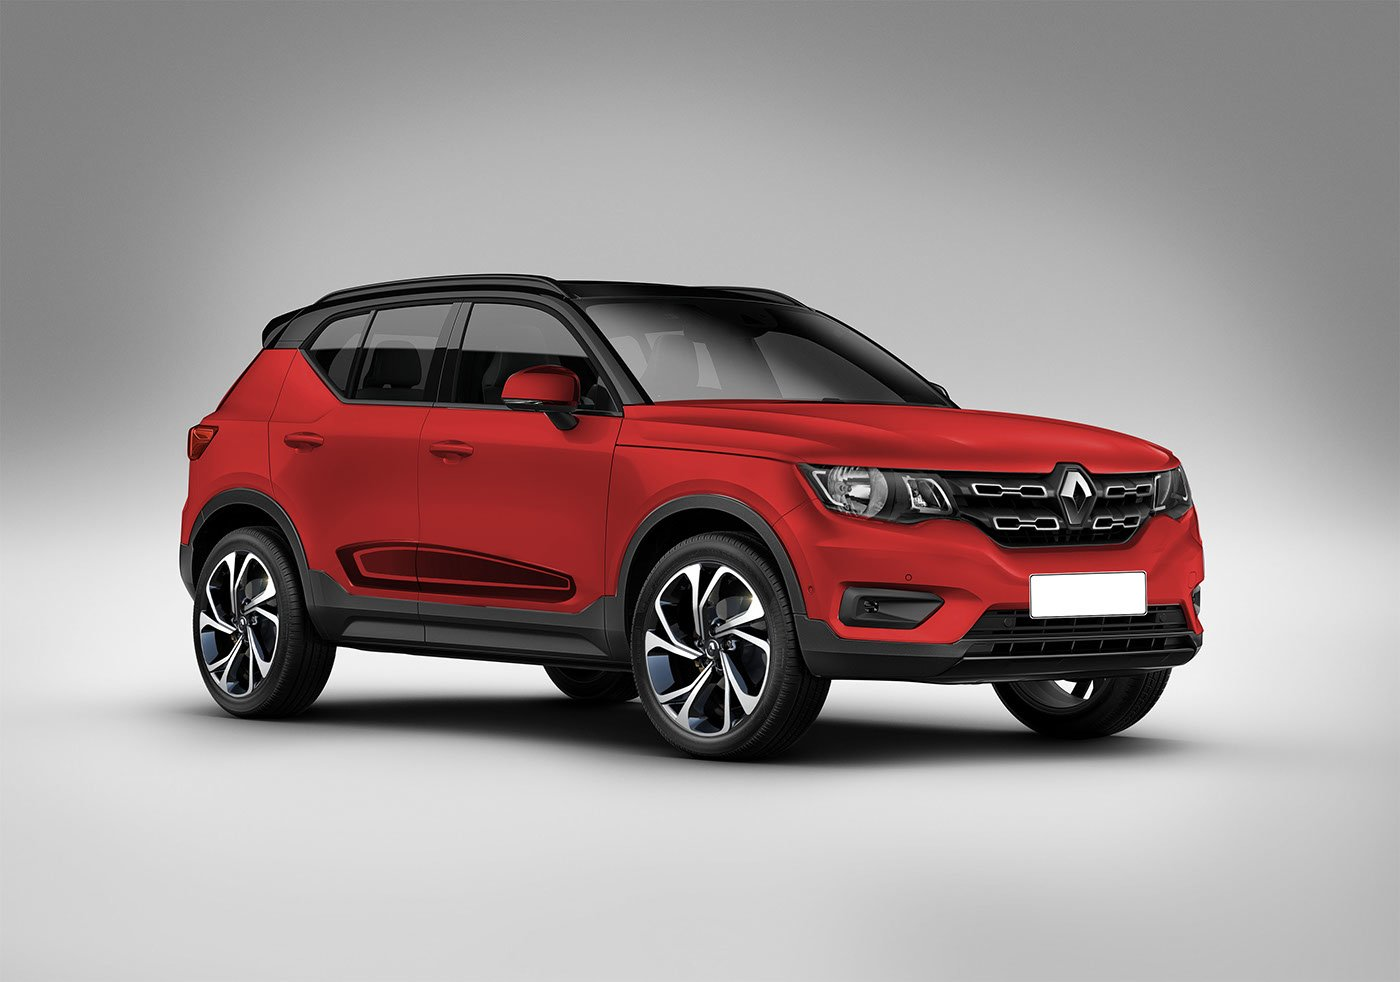 renault kwid compact suv rendered to compete with vitara brezza. Black Bedroom Furniture Sets. Home Design Ideas